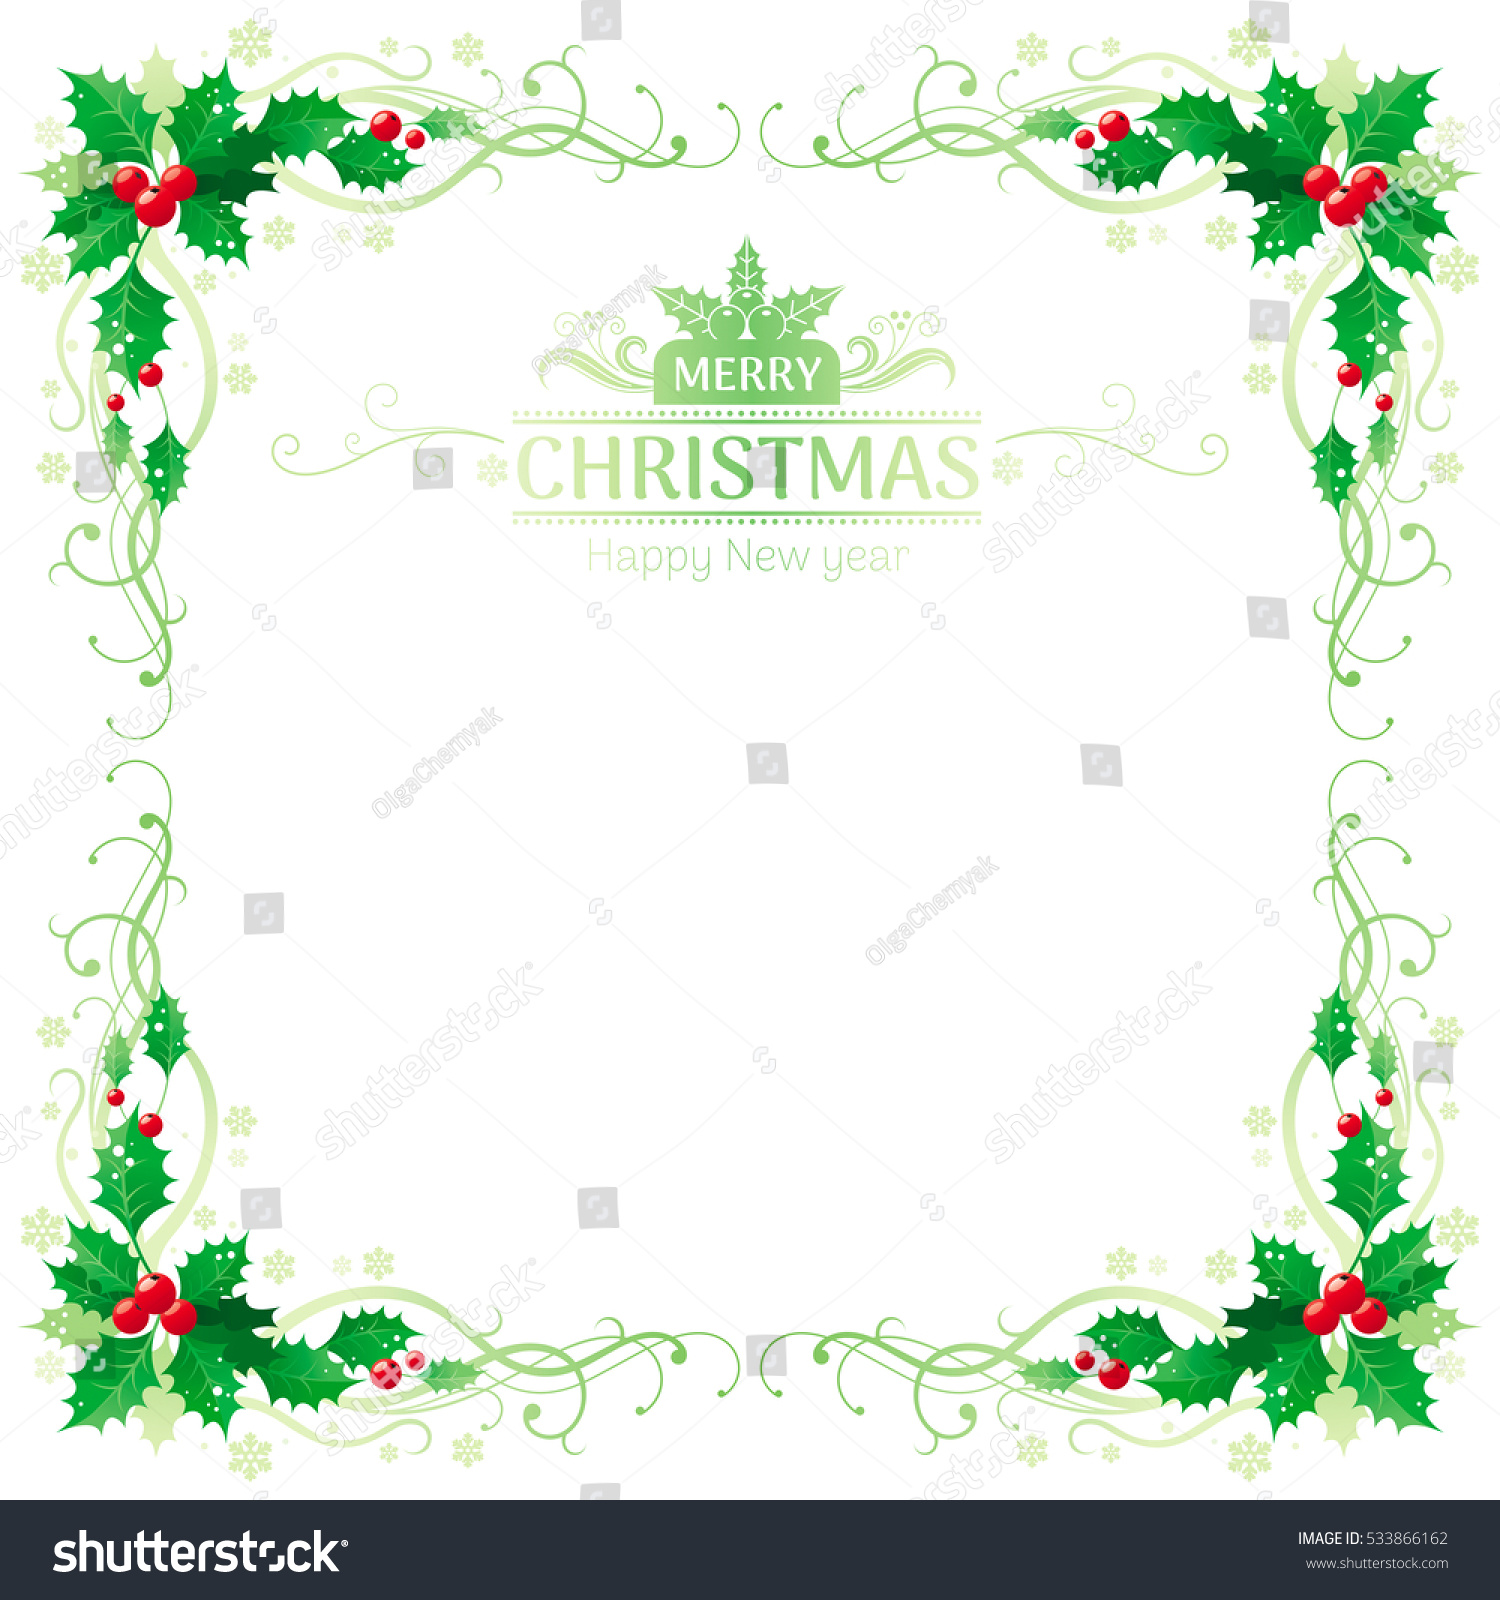 Merry Christmas Happy New Year Square Stock Vector ...